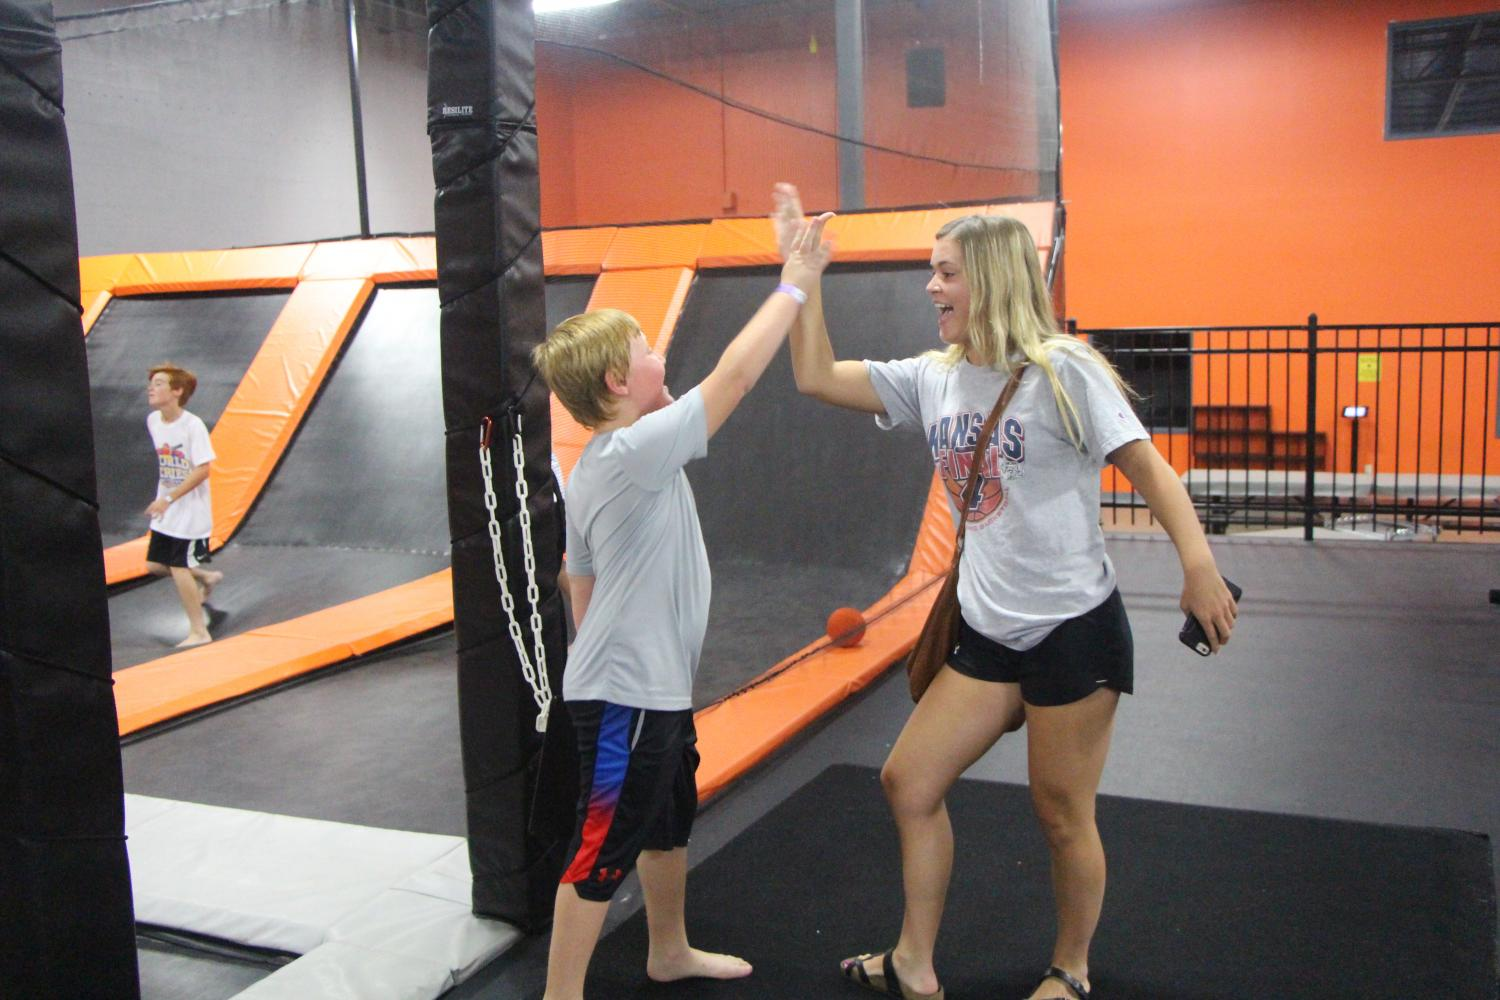 Junior Natalie Williams' summers are spent nannying and taking the kids she nannies to activities like jumping at the trampoline park Urban Air.